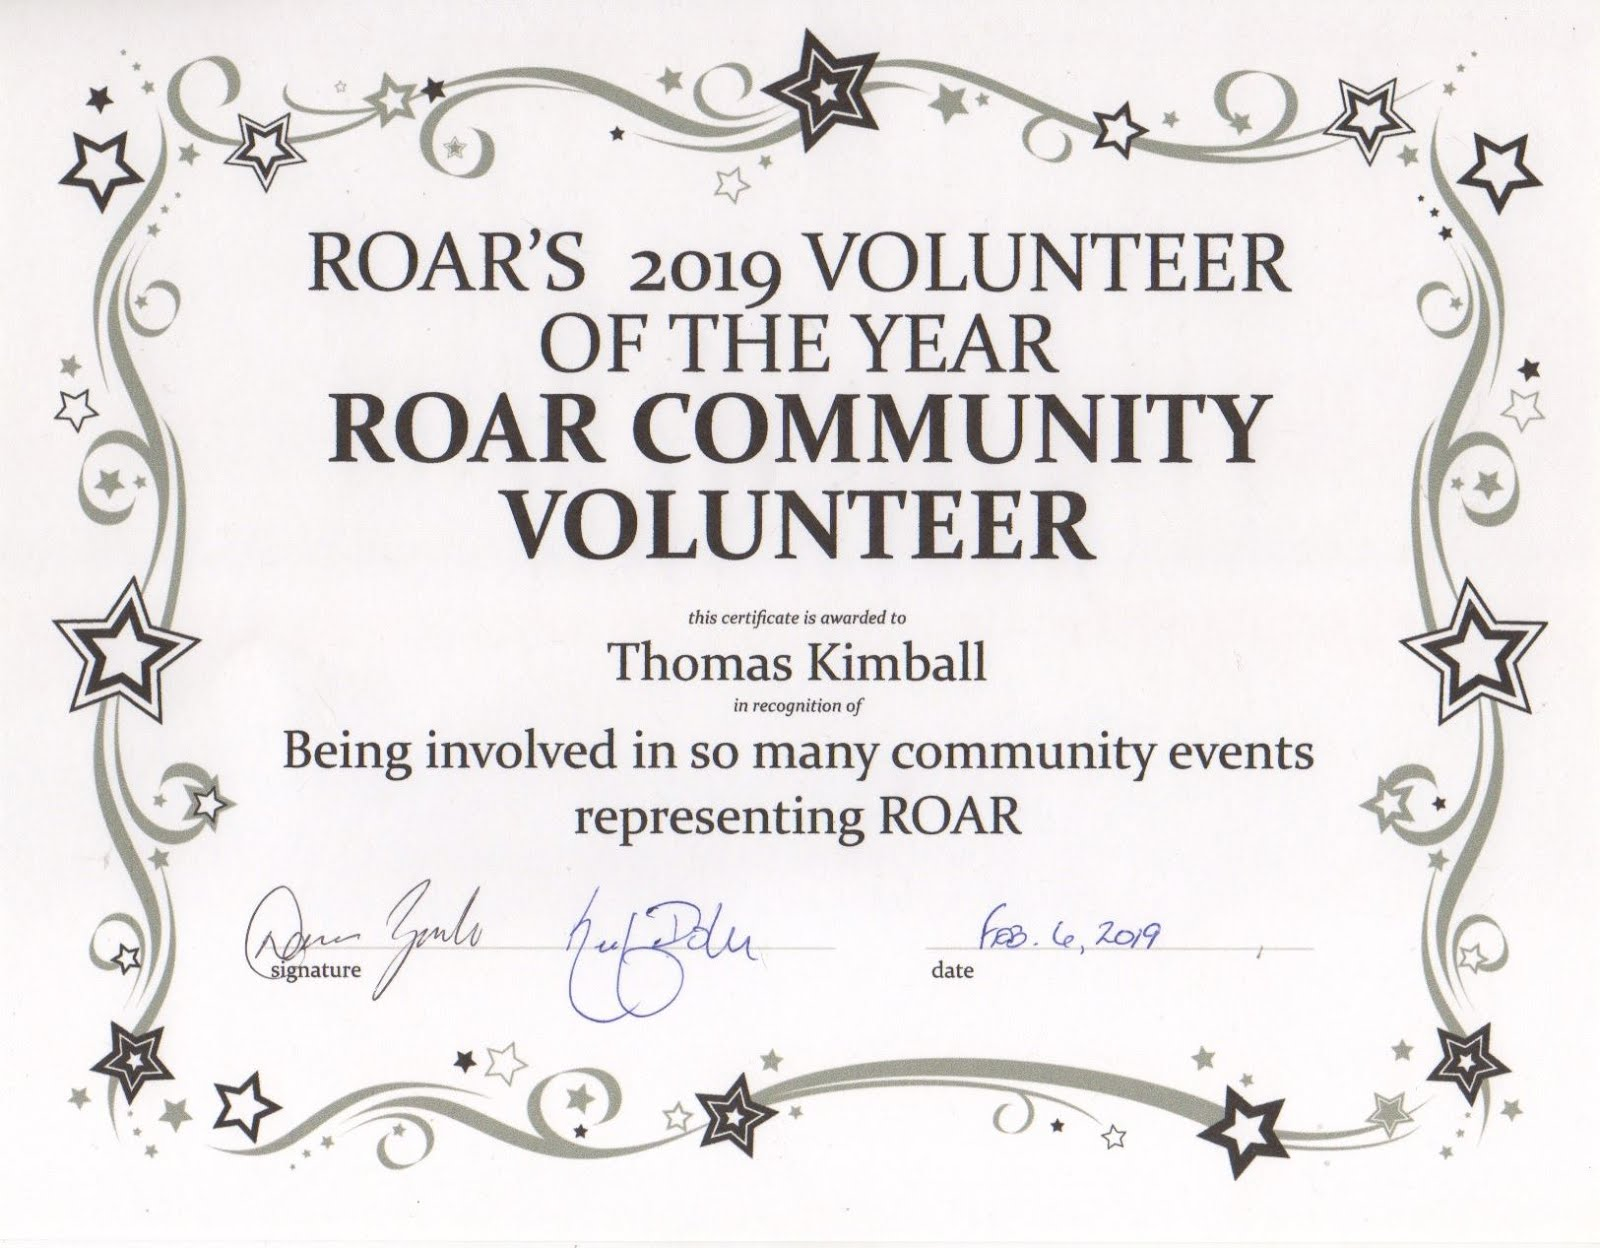 Thomas Q Kimball presented with ROAR's 2019 Volunteer of the year ROAR Community Volunteer